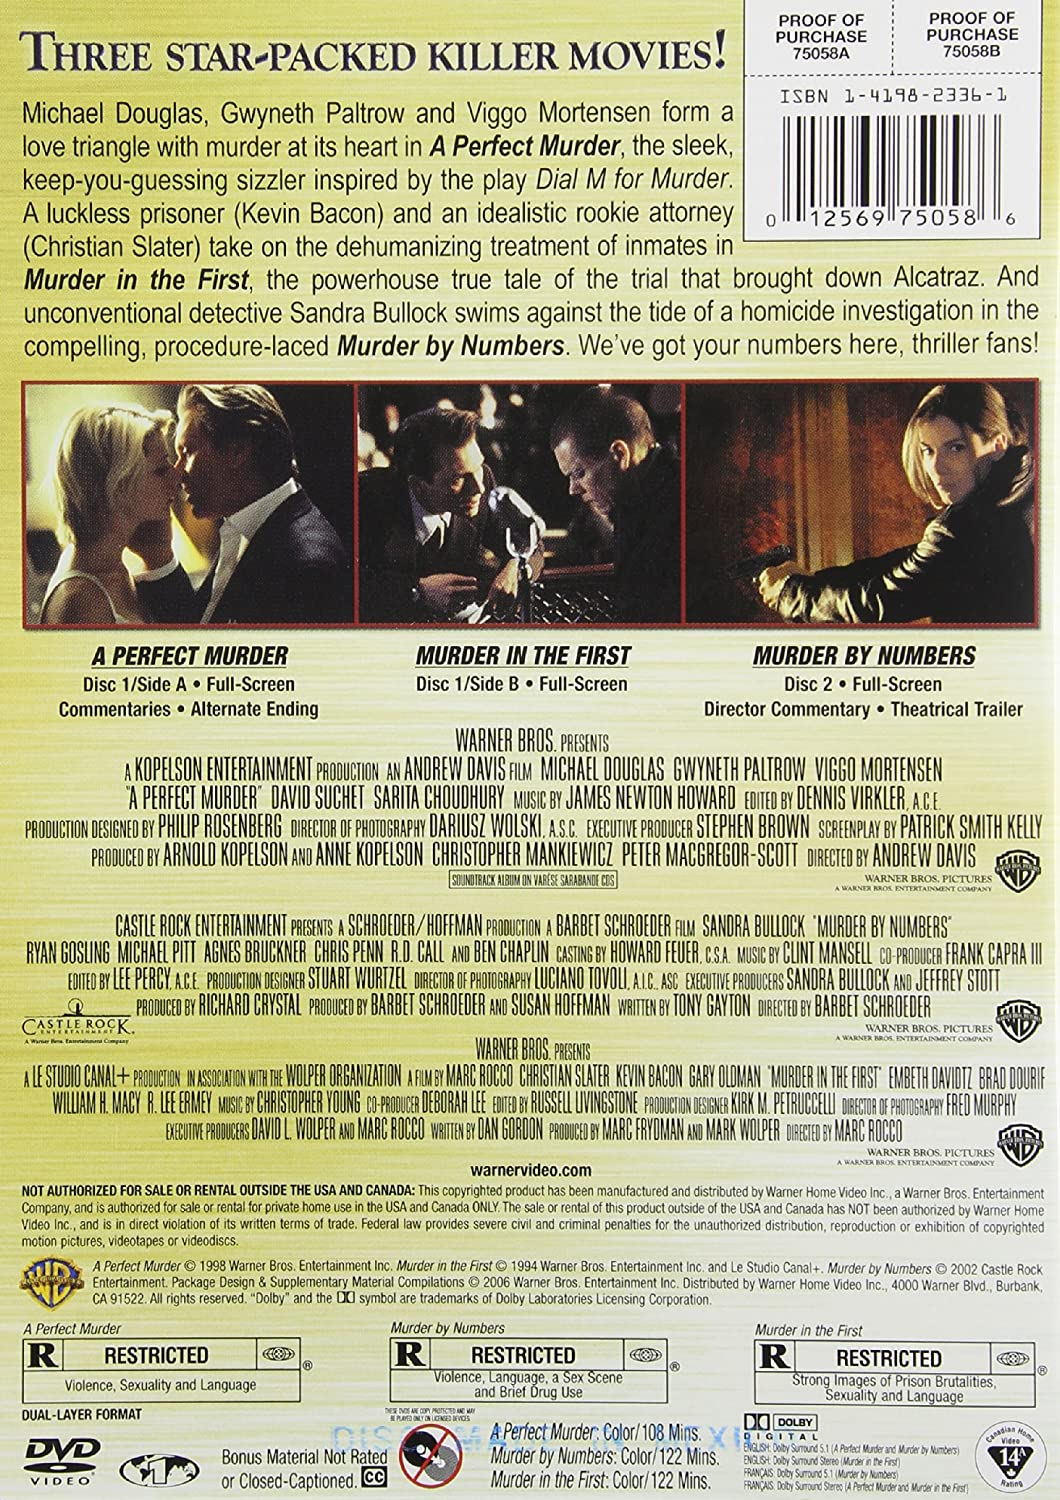 Amazon.com: A Perfect Murder / Murder by Numbers / Murder in the ...